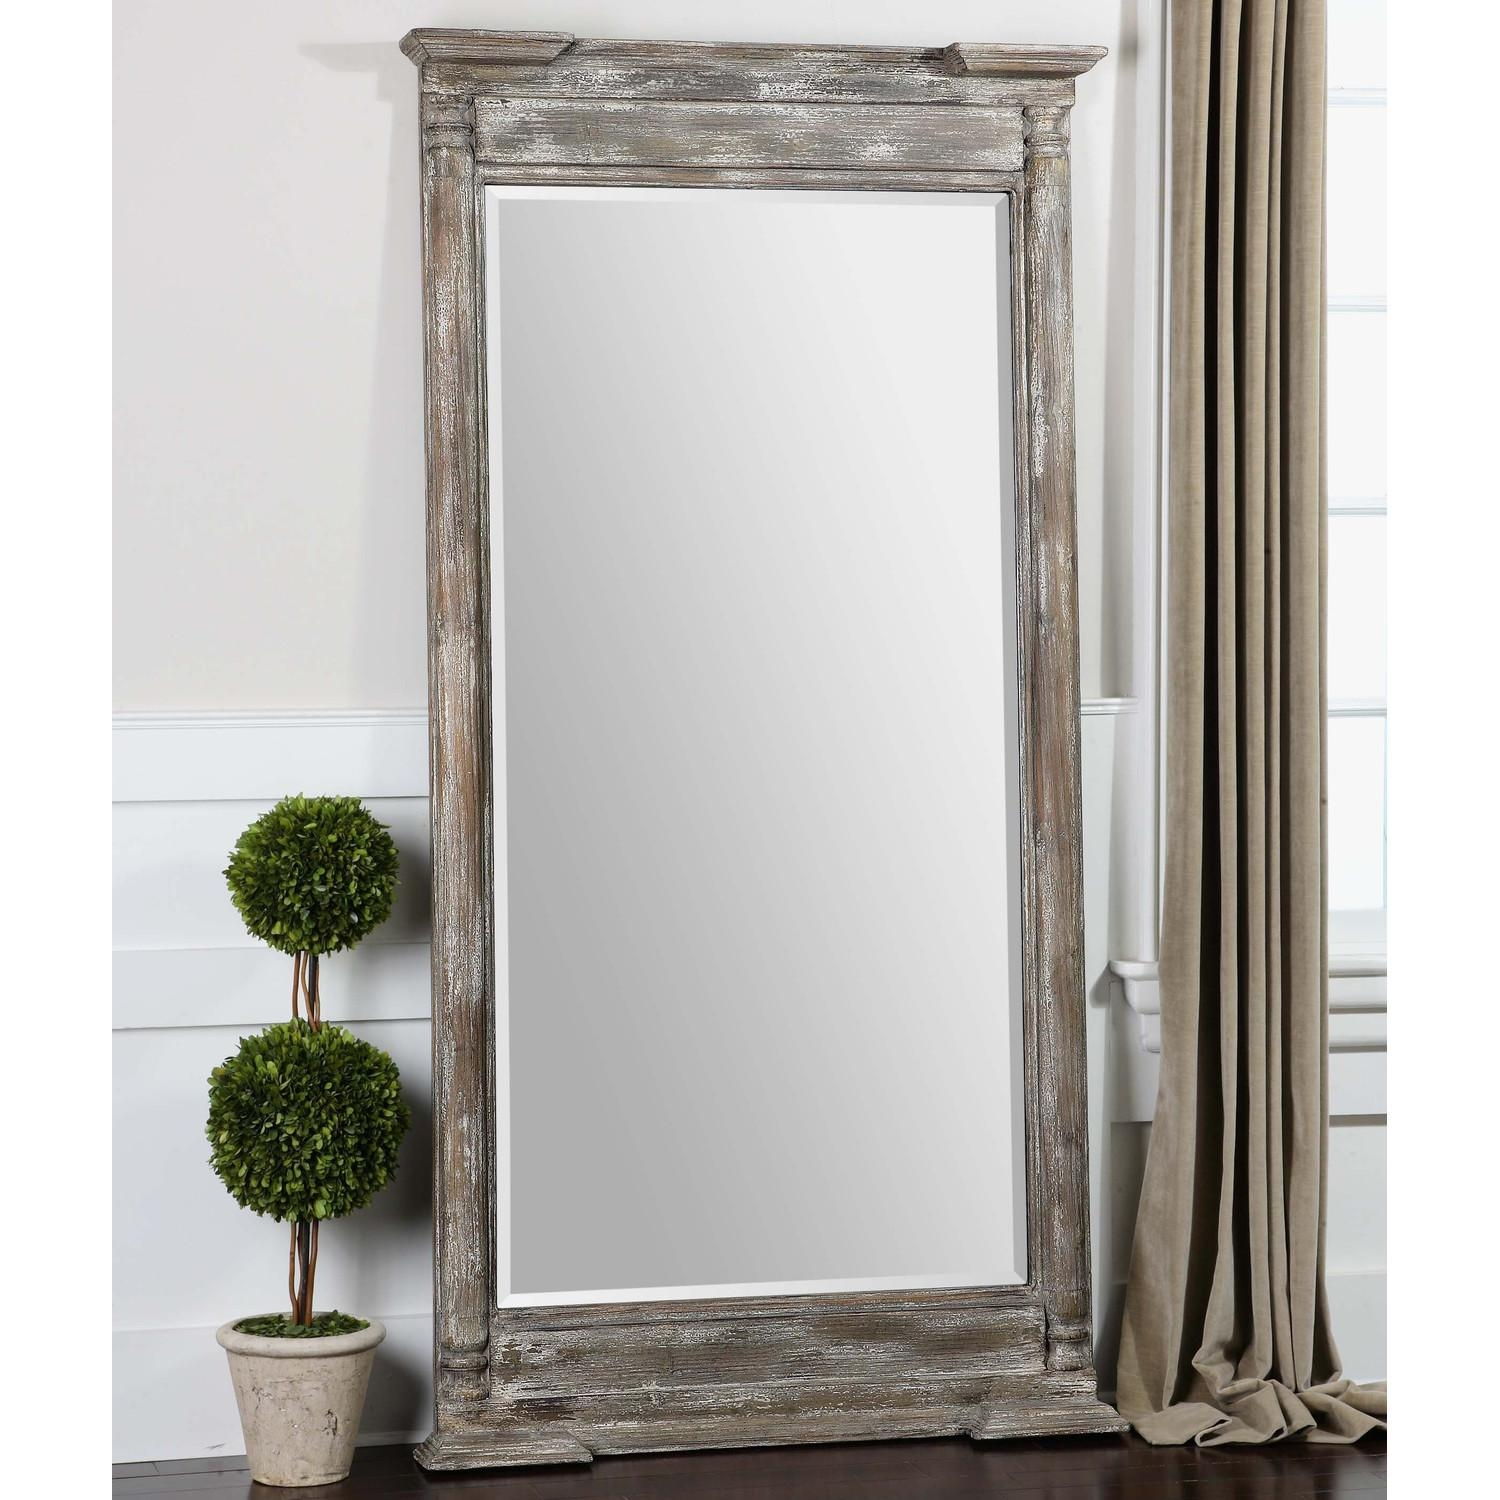 top 20 full length mirror vintage mirror ideas. Black Bedroom Furniture Sets. Home Design Ideas